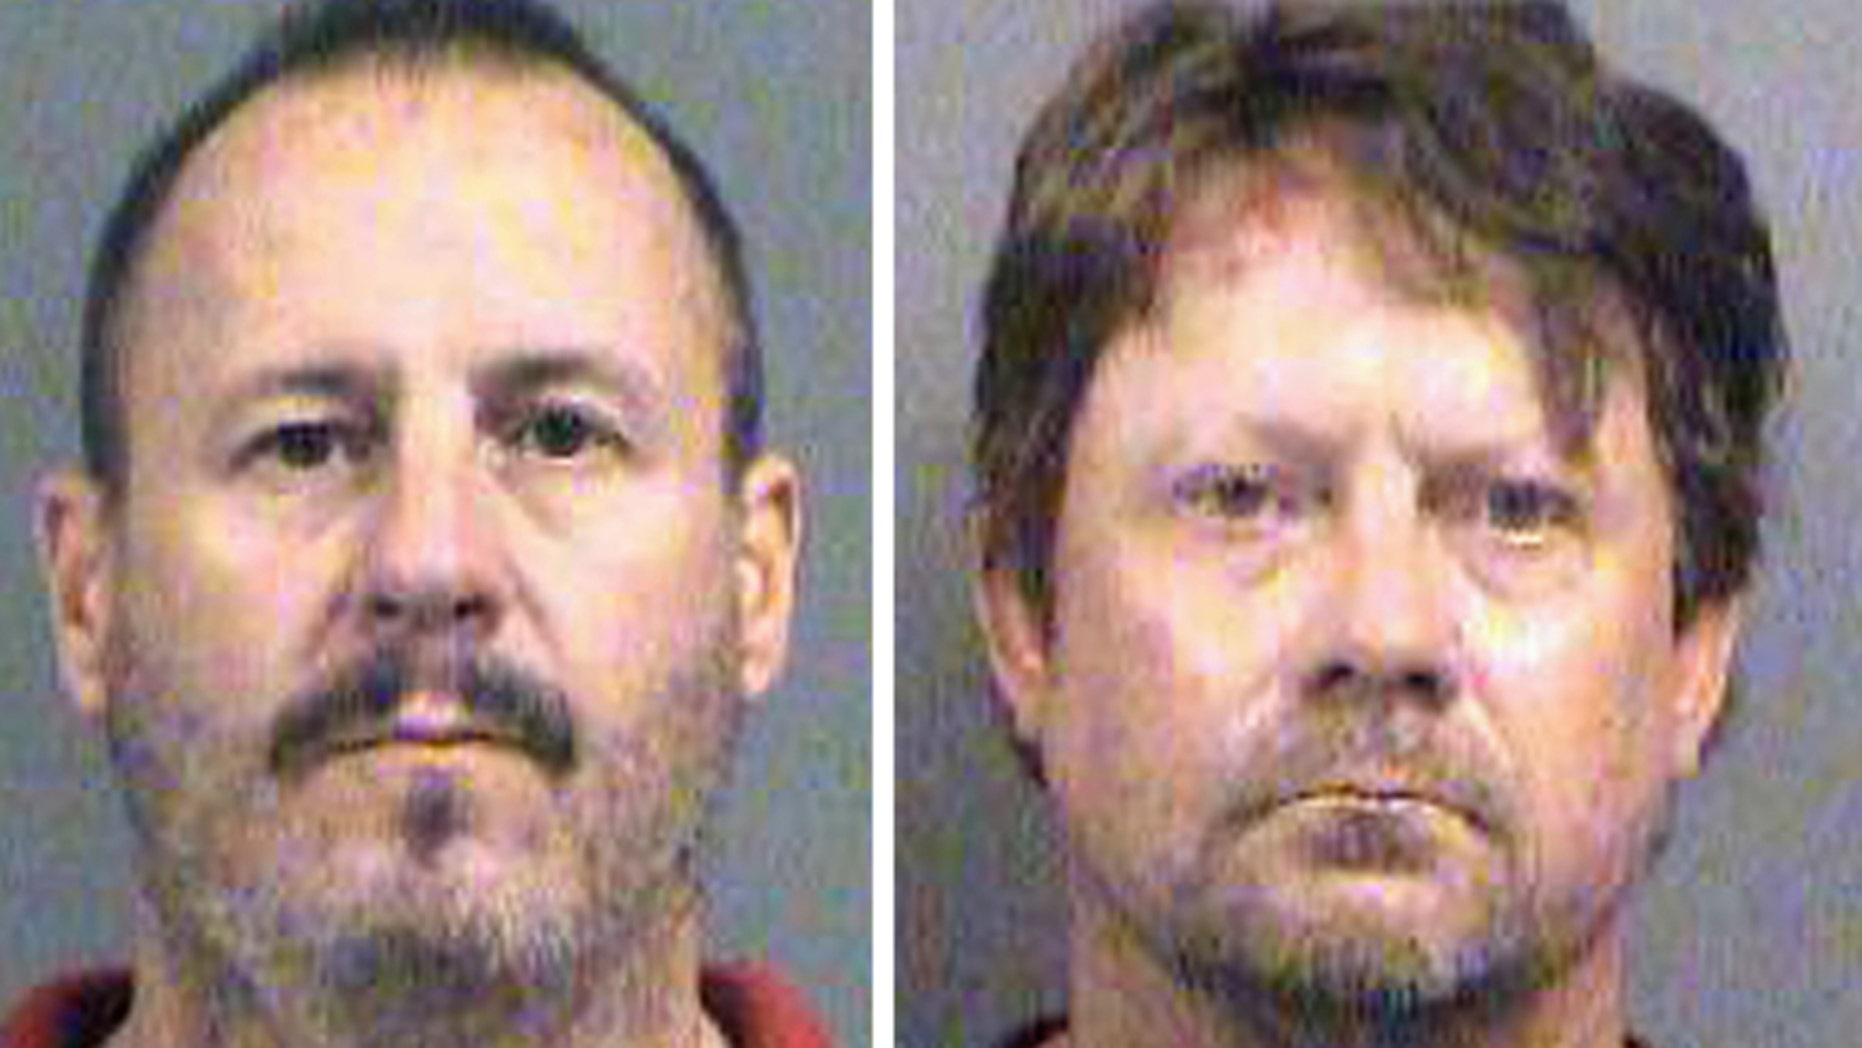 These file photos show Curtis Allen (left) and Patrick Stein (right) who are accused of plotting a bomb targeting Somali immigrants.